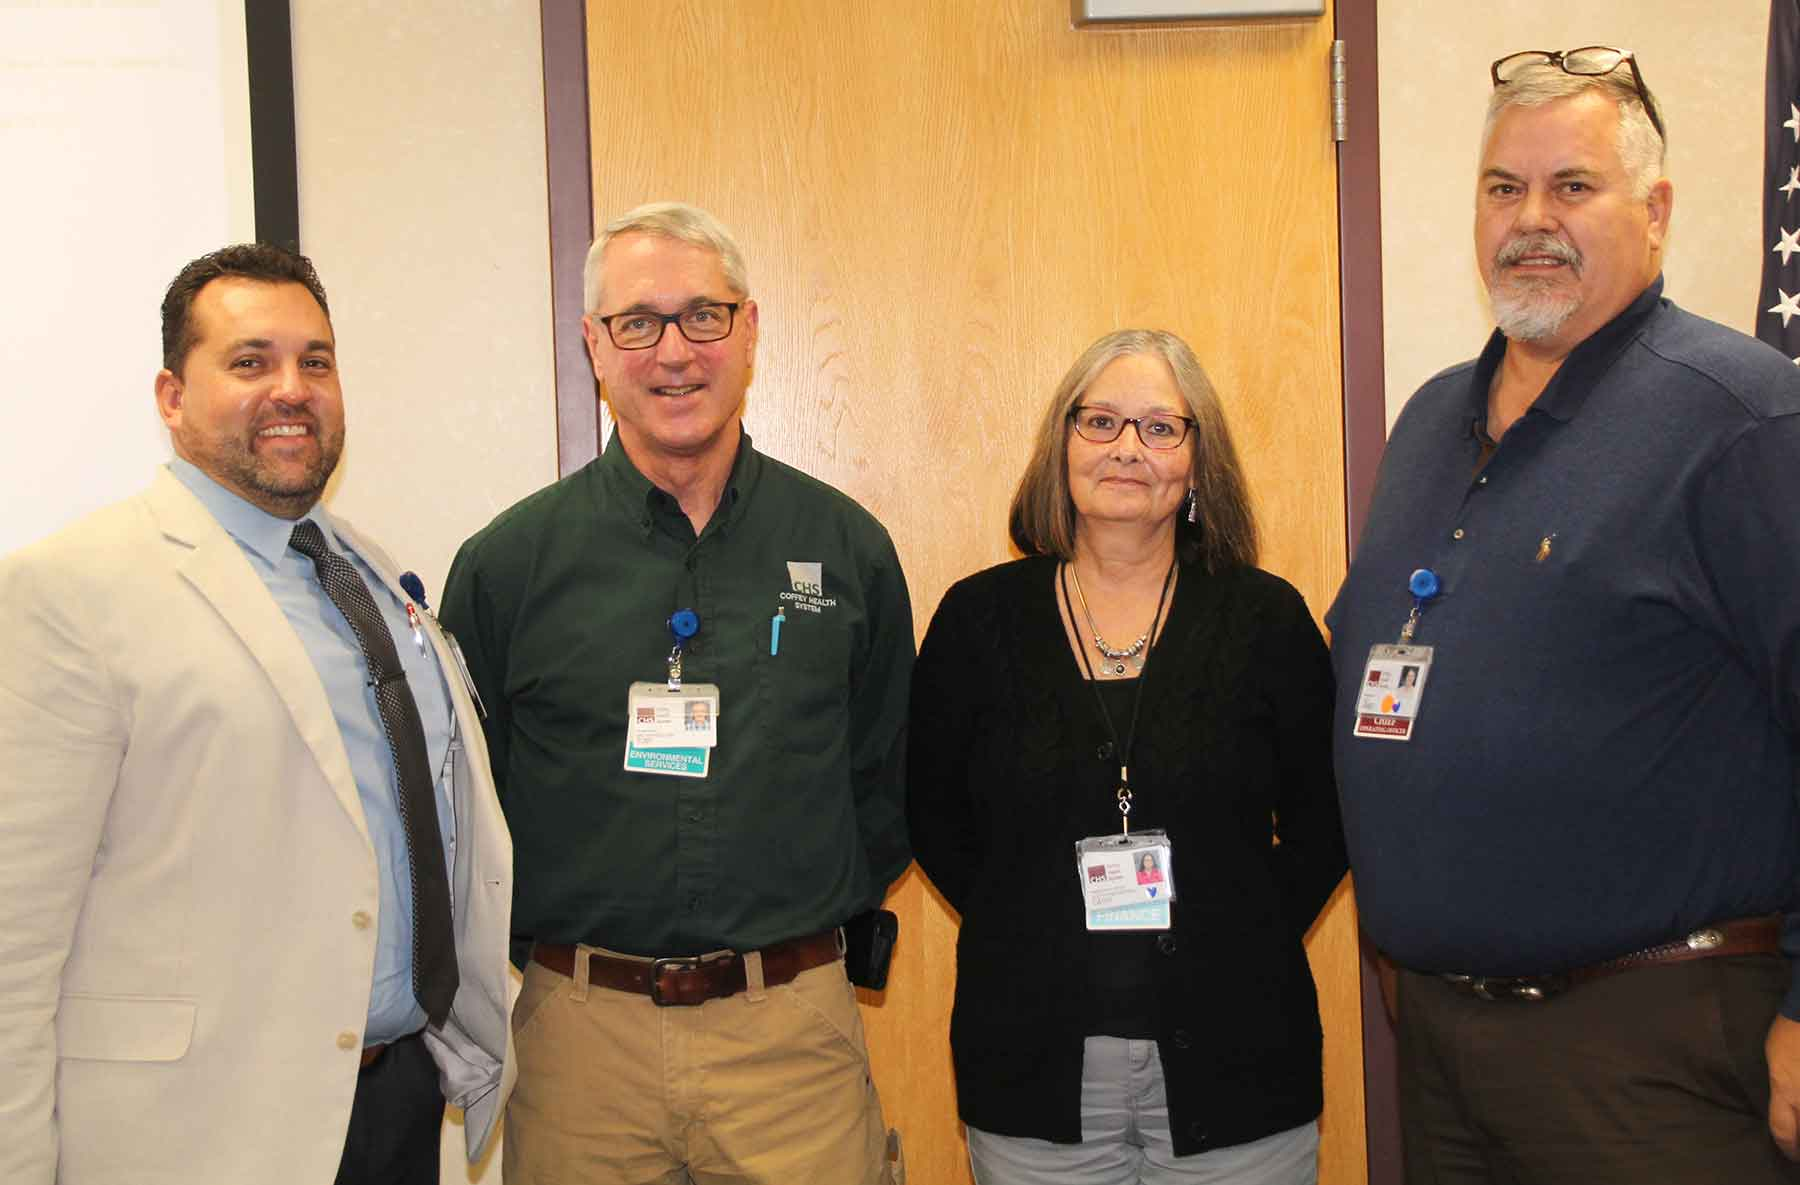 Jeremy Clingenpeel, Kansas Health Care Worker of the Year Toby Paige, Cathy Paige, James Higgins